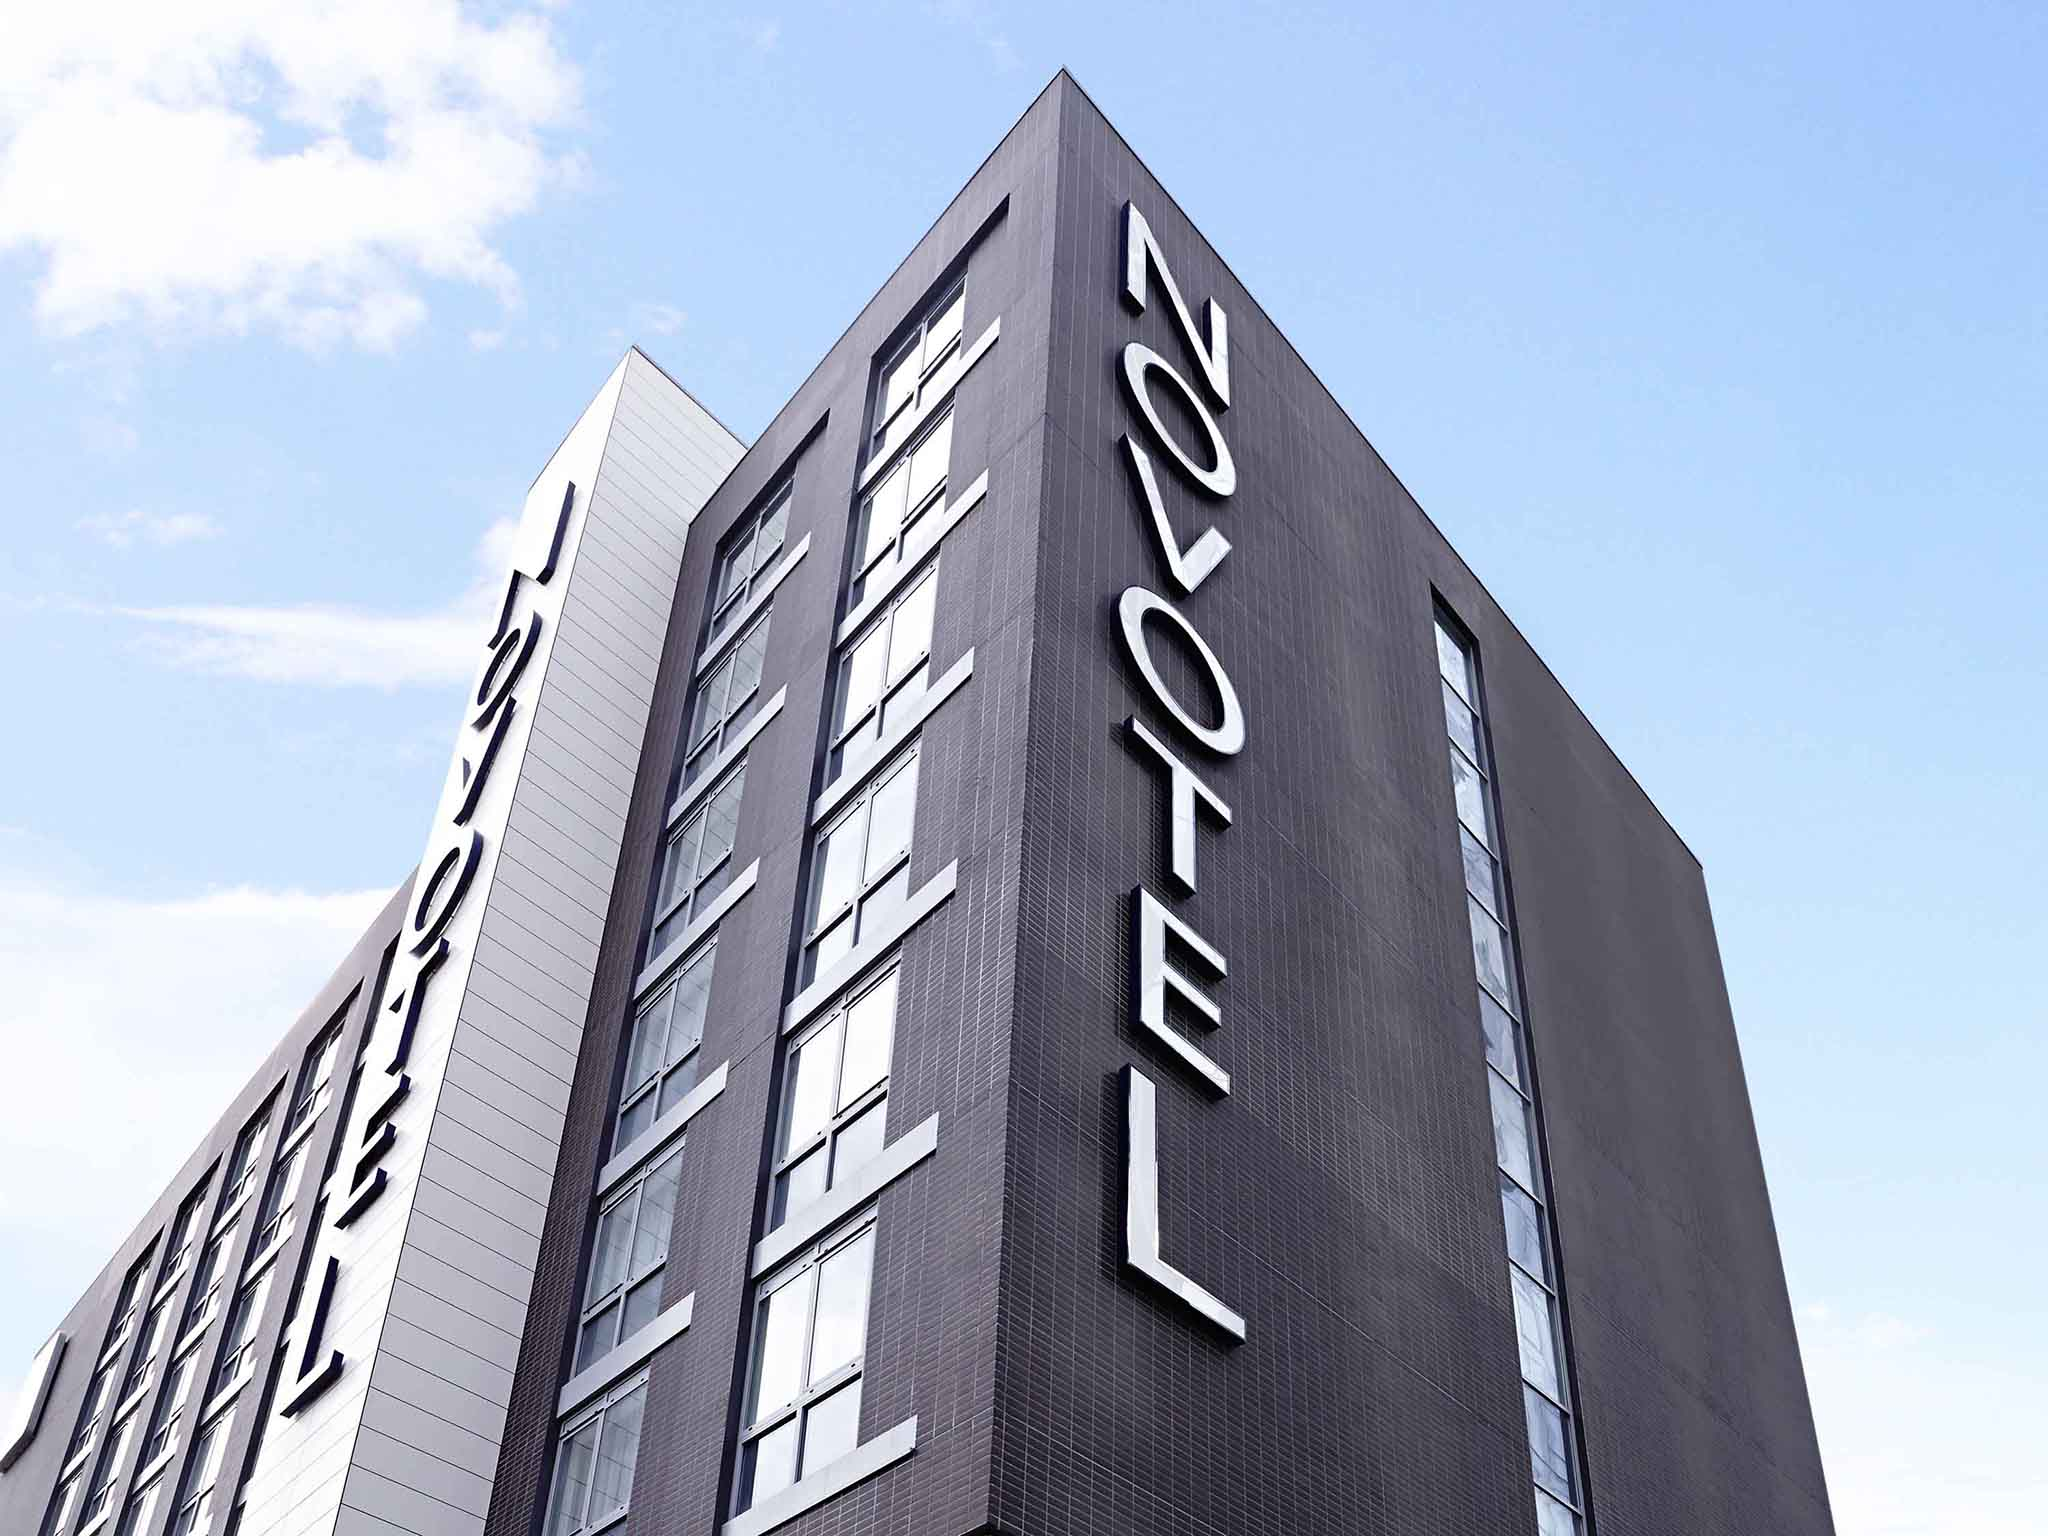 Hotel – Novotel London Brentford